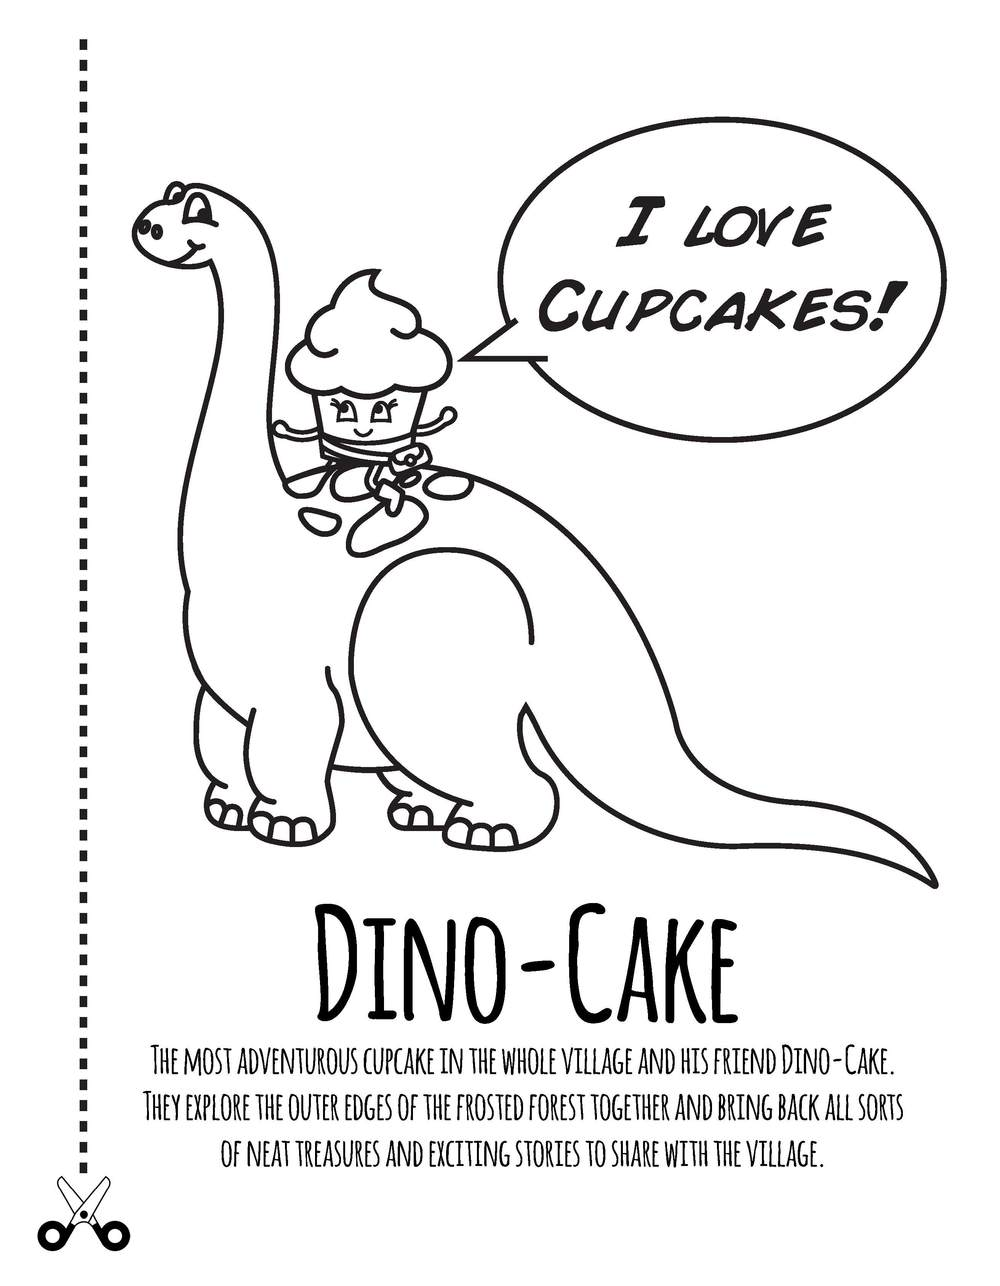 adventures of katies cupcakes coloring book_Page_35.jpg